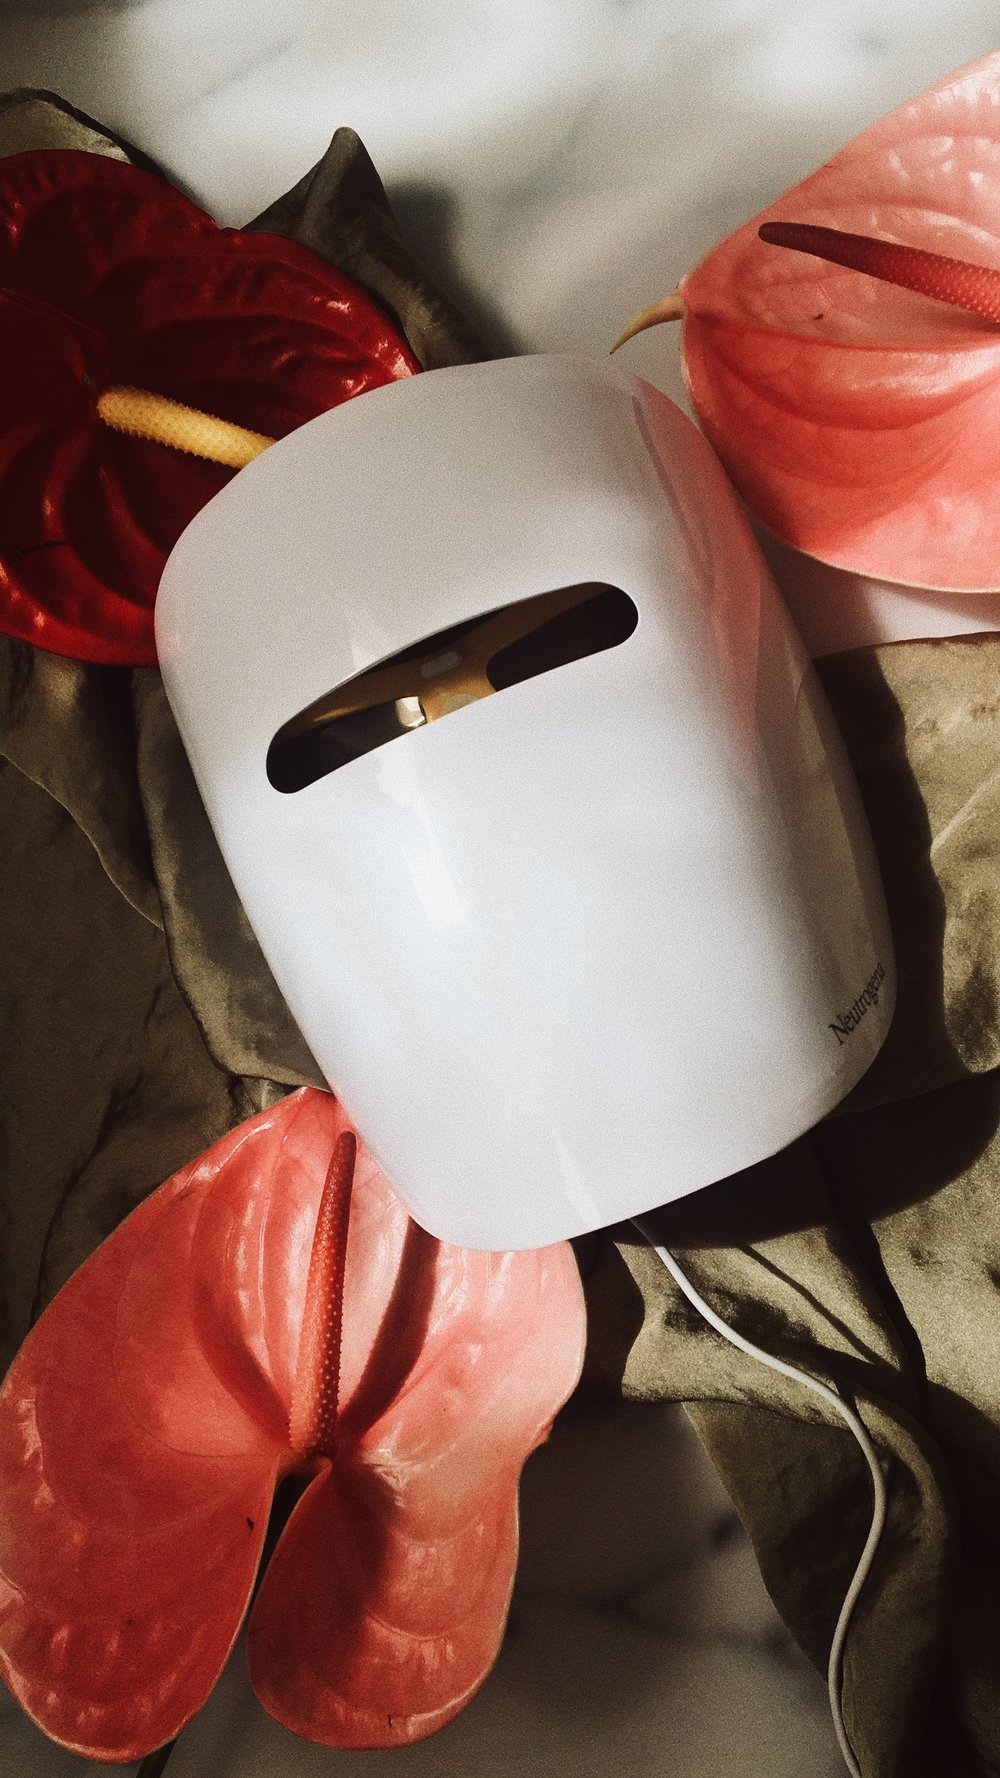 I SHOWED YOU THIS BEFORE IN ONE OF OUR FIRST WOWS. THE   LIGHT THERAPY   MASK STILL WOWS ME, SO HERE WE GO AGAIN: IT'S A MASK THAT USES RED AND BLUE LIGHT TO COMBAT BACTERIA ON YOUR SKIN THAT LEAD TO ACNE OR BLEMISHES. USE IT 10 MINUTES A DAY (I DO IT BEFORE I GO TO BED), DURING WHICH YOU LOOK LIKE MICHEAL MYERS, SCARE AWAY YOUR PARTNER, YOUR CAT AND ANYONE WHO FACE TIMES YOU BUT IT'S WORTH IT! -T